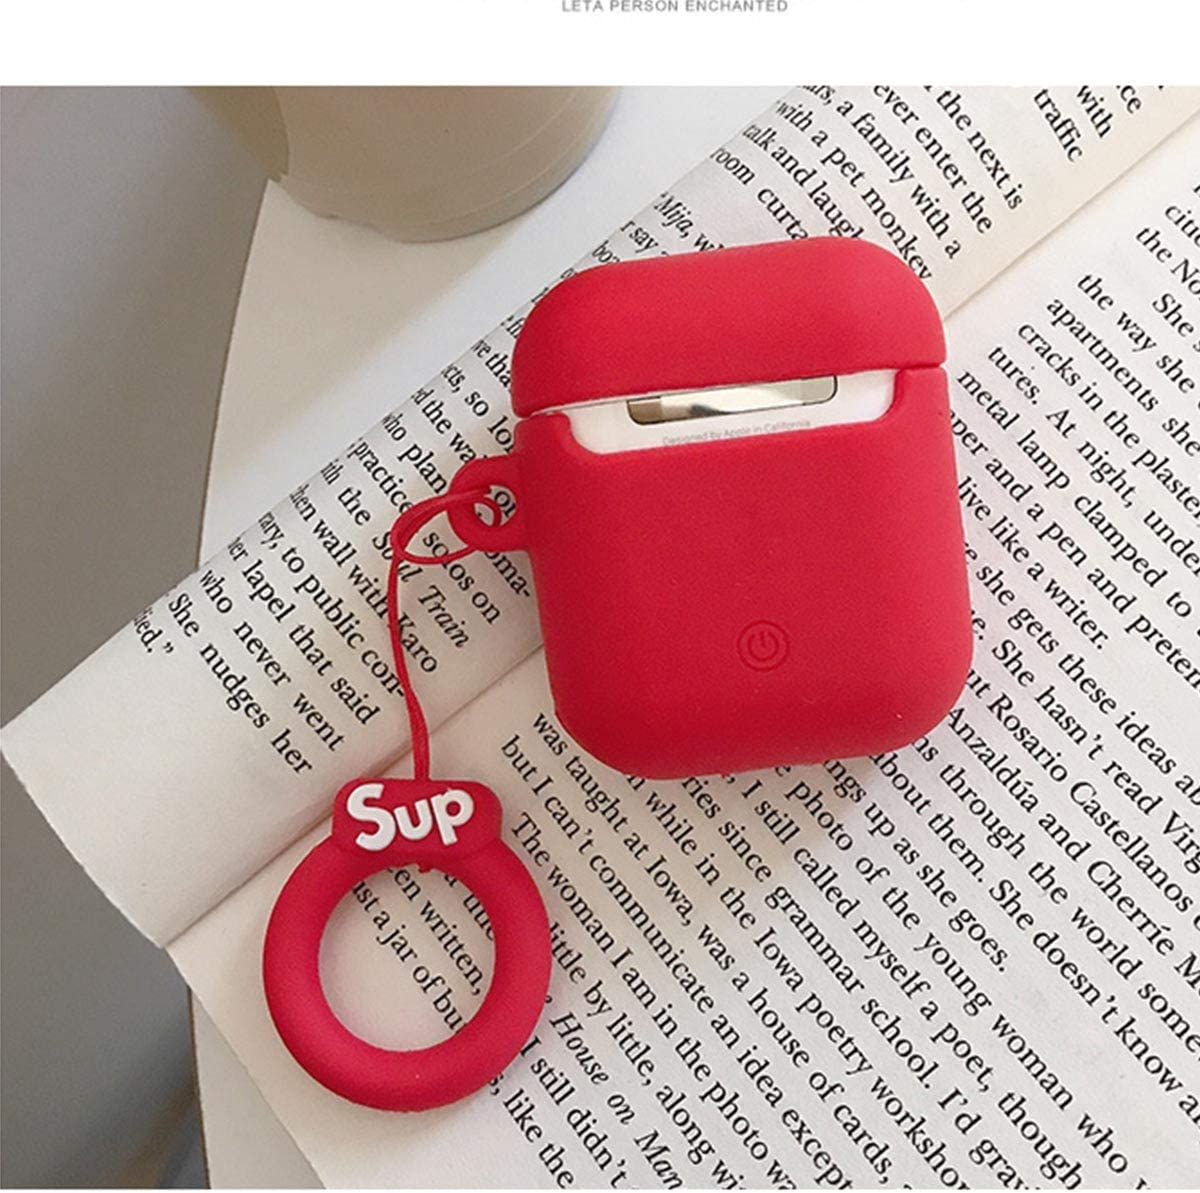 for AirPods Pro Case Protective Cover .Compatible with Apple AirPods Pro 2019 Silicone Case Keychain Protective Cover Skin for AirPods Pro Charging Case Fashion Designer Cases Red Sup Pro